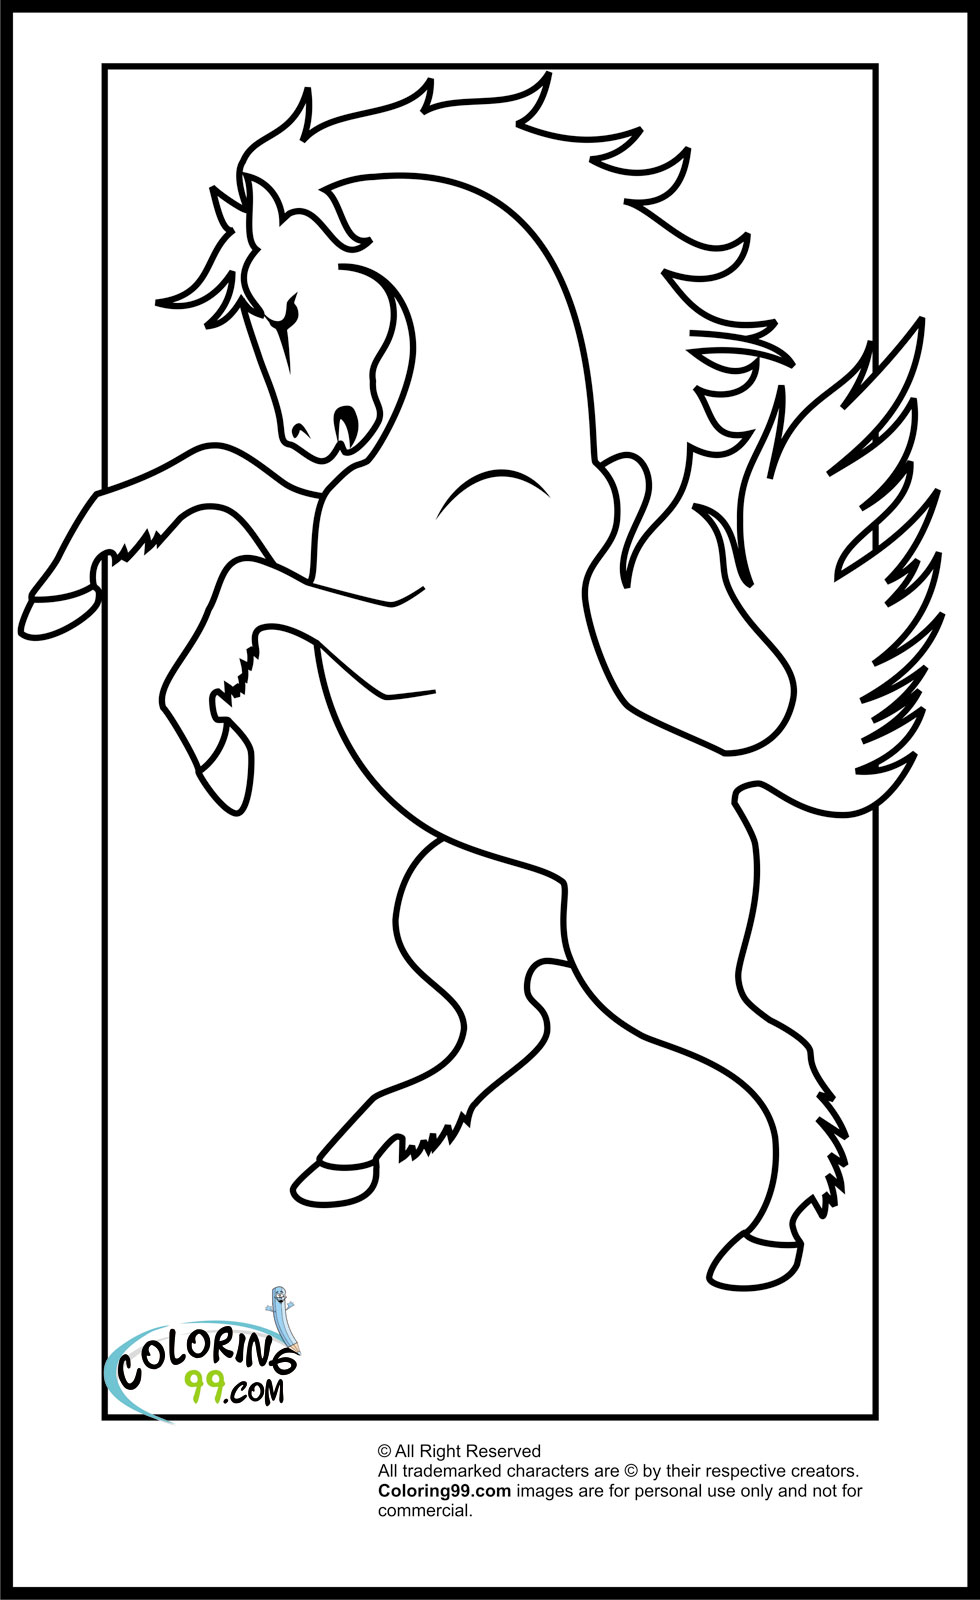 horse coloring book pages coloring pages of horses printable free coloring sheets book pages horse coloring